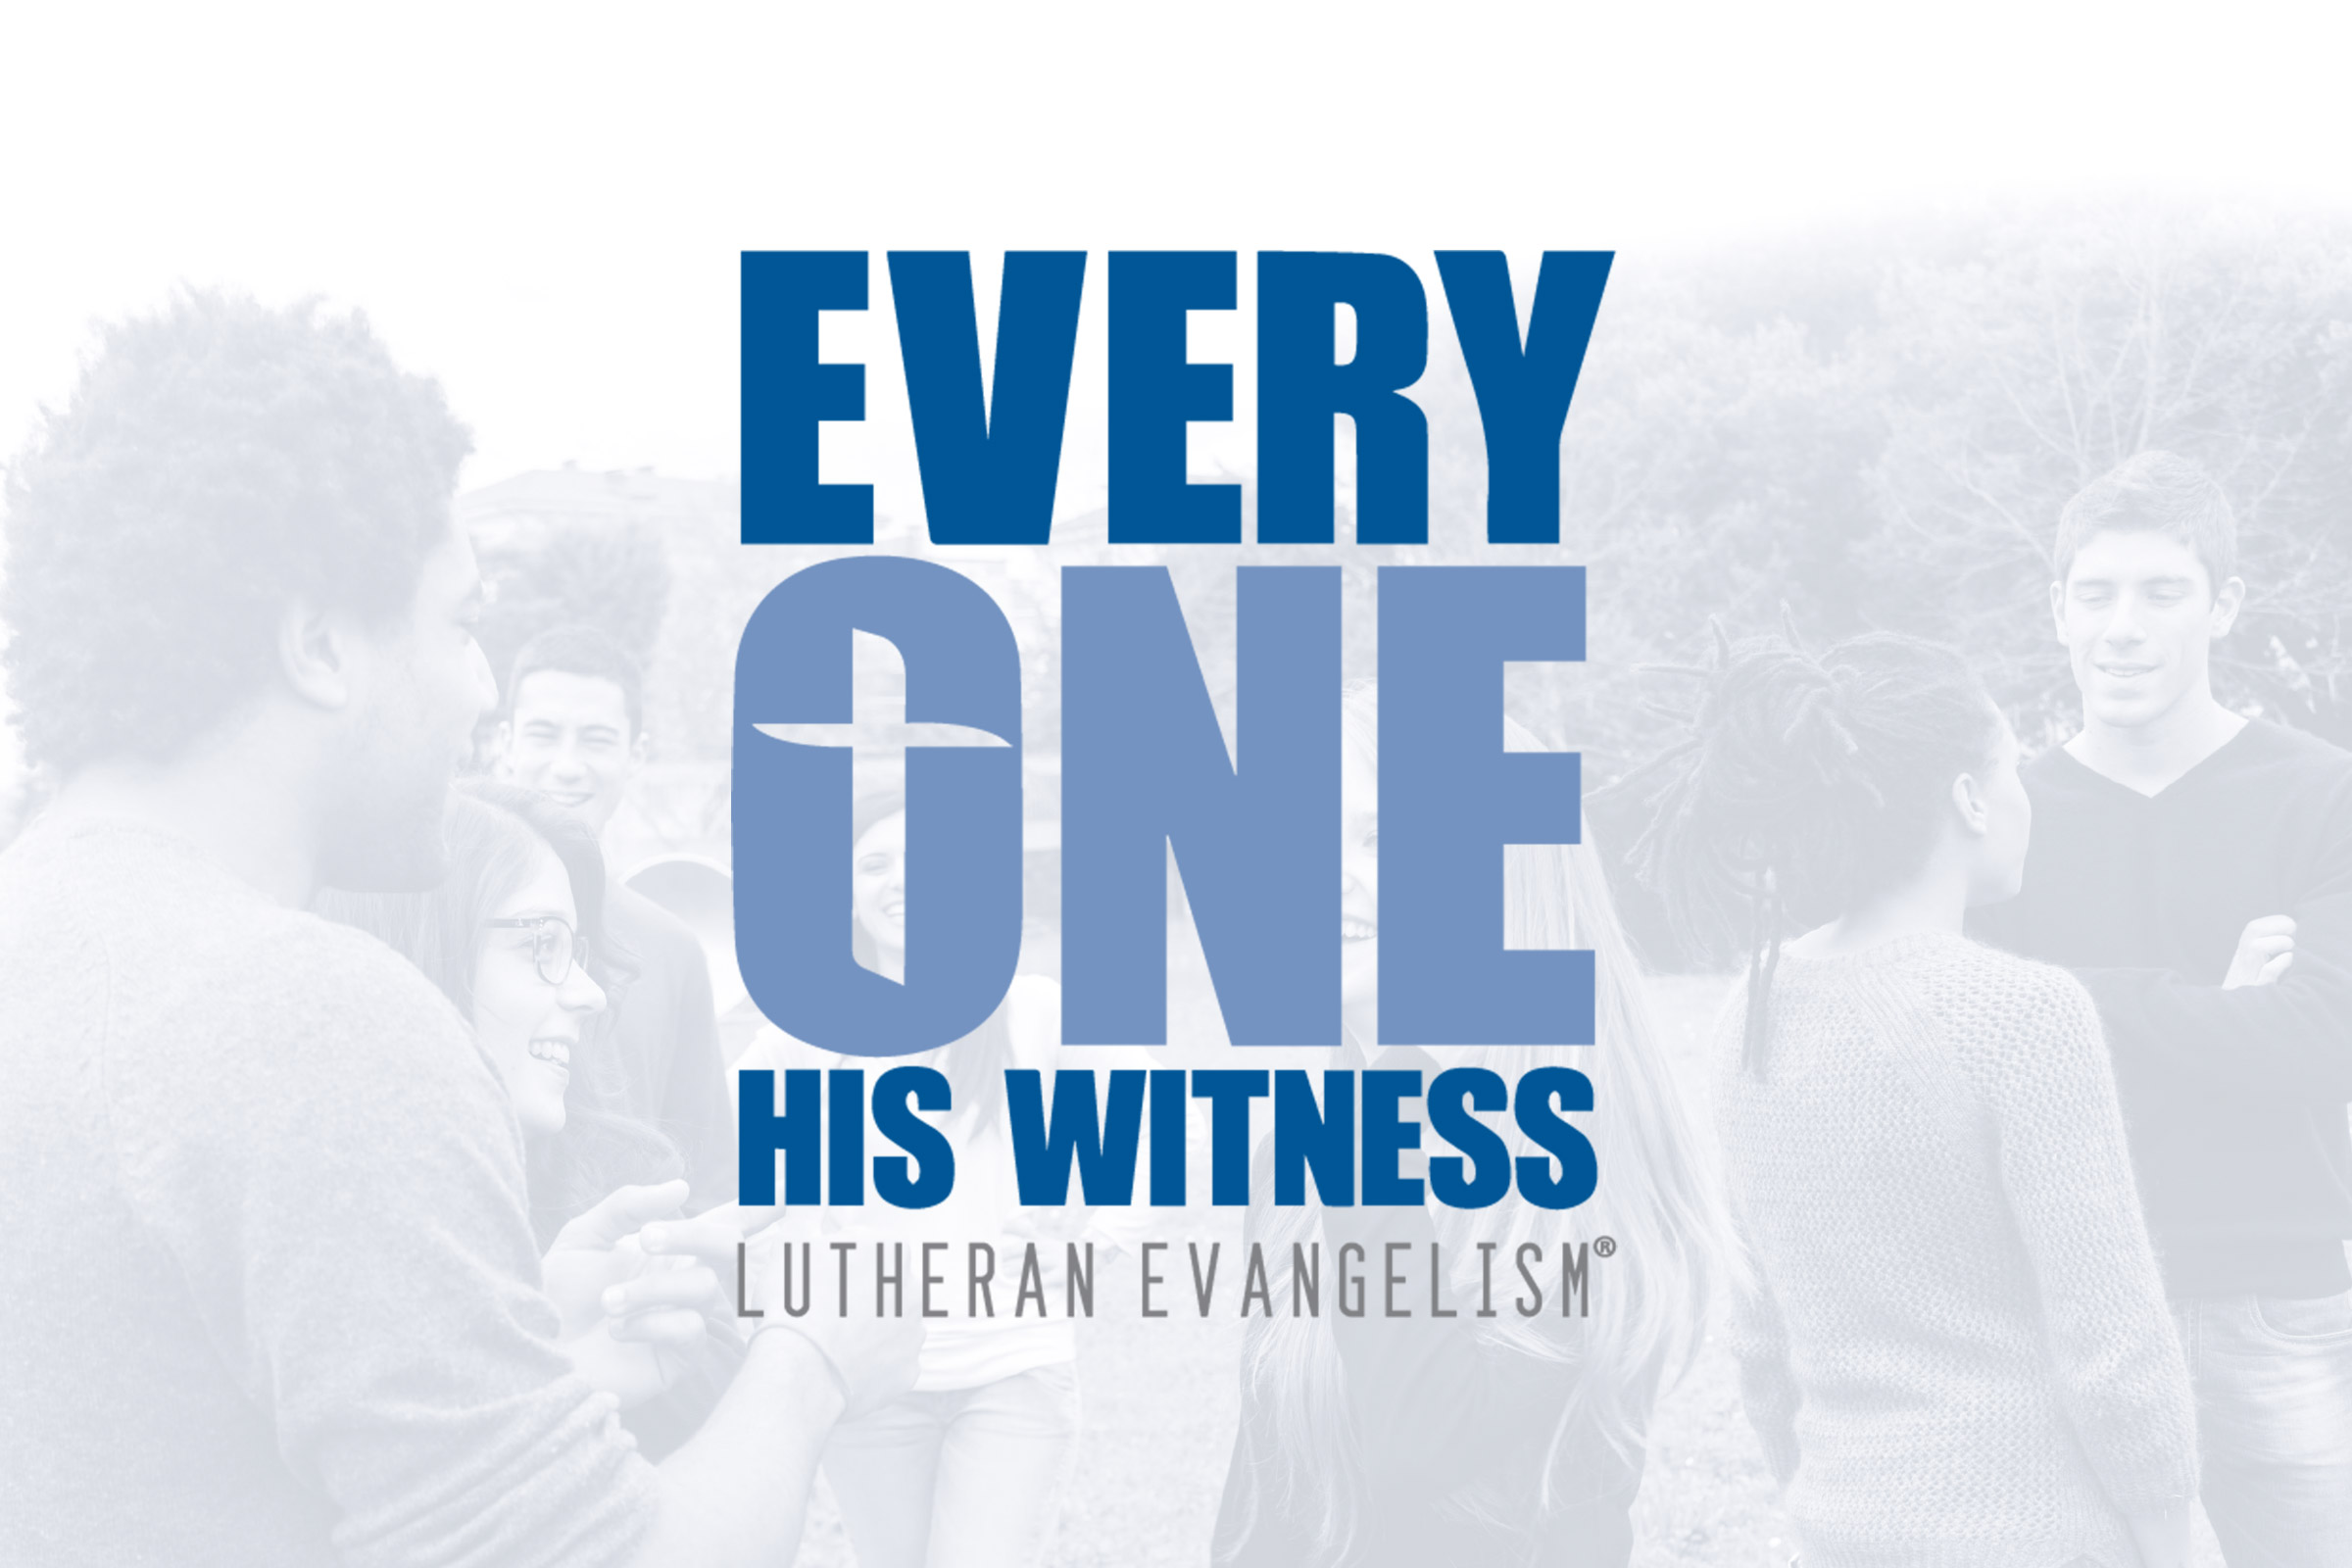 Everyone His Witness